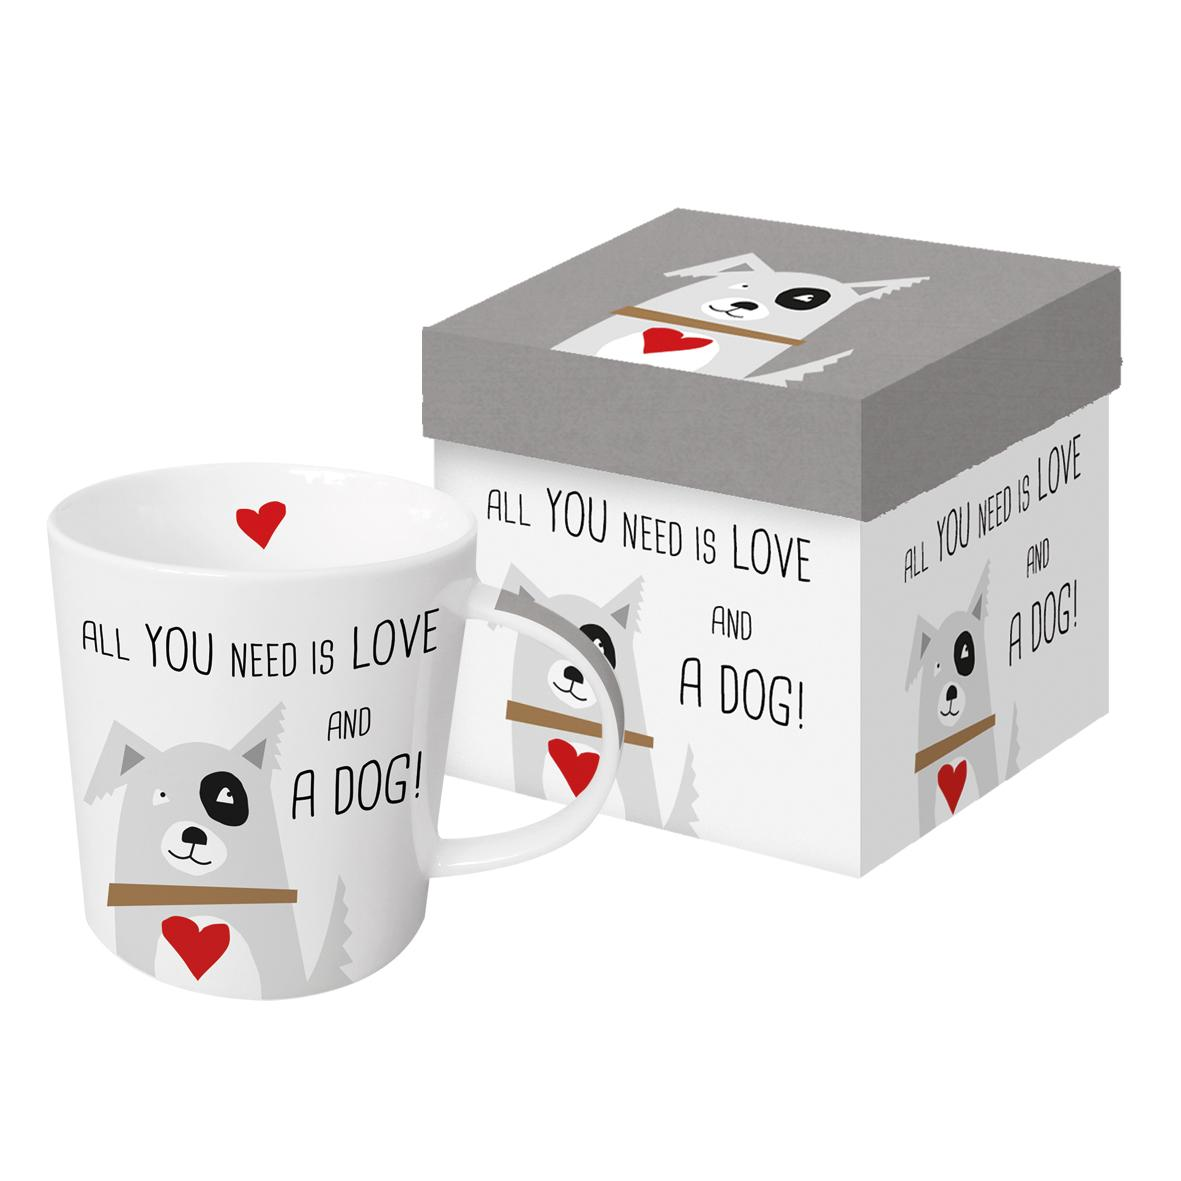 Tazza Mug in porcellana New Bone China decorata ppd ALL YOU NEED IS LOVE AND A DOG